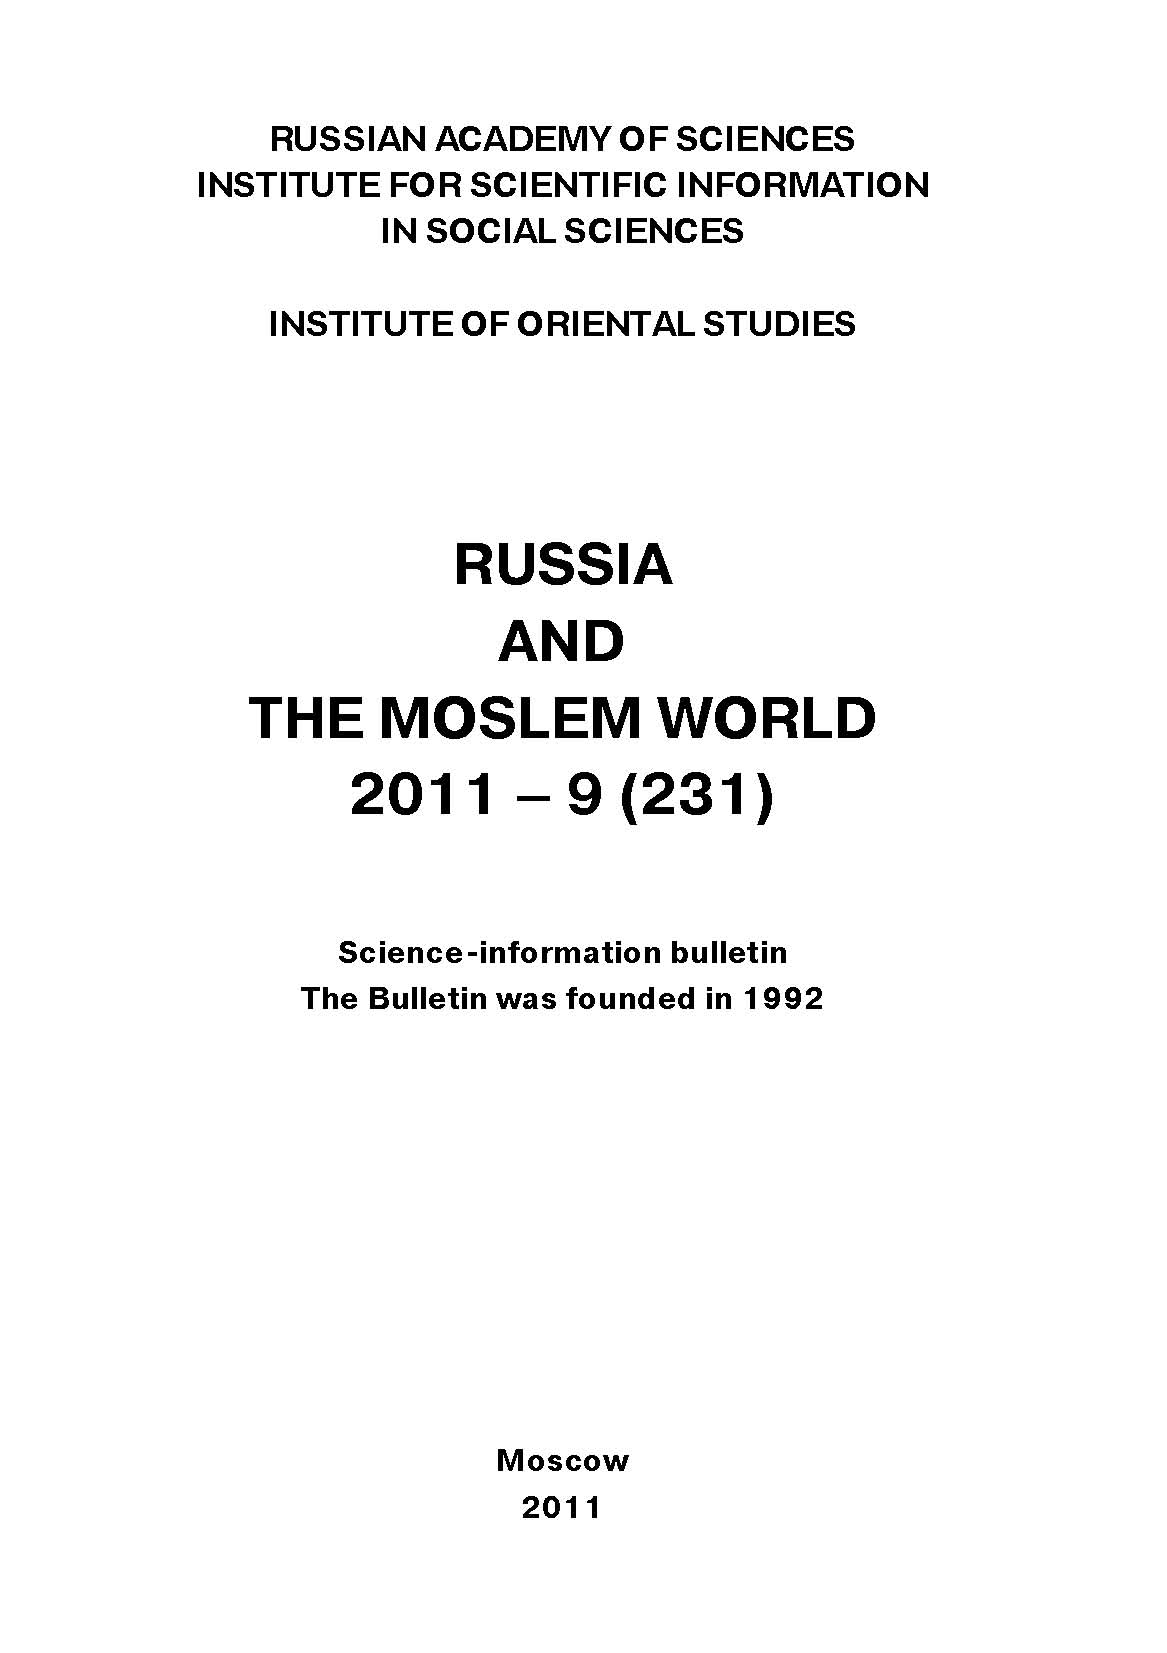 Сборник статей Russia and the Moslem World № 09 / 2011 сборник статей russia and the moslem world 04 2011